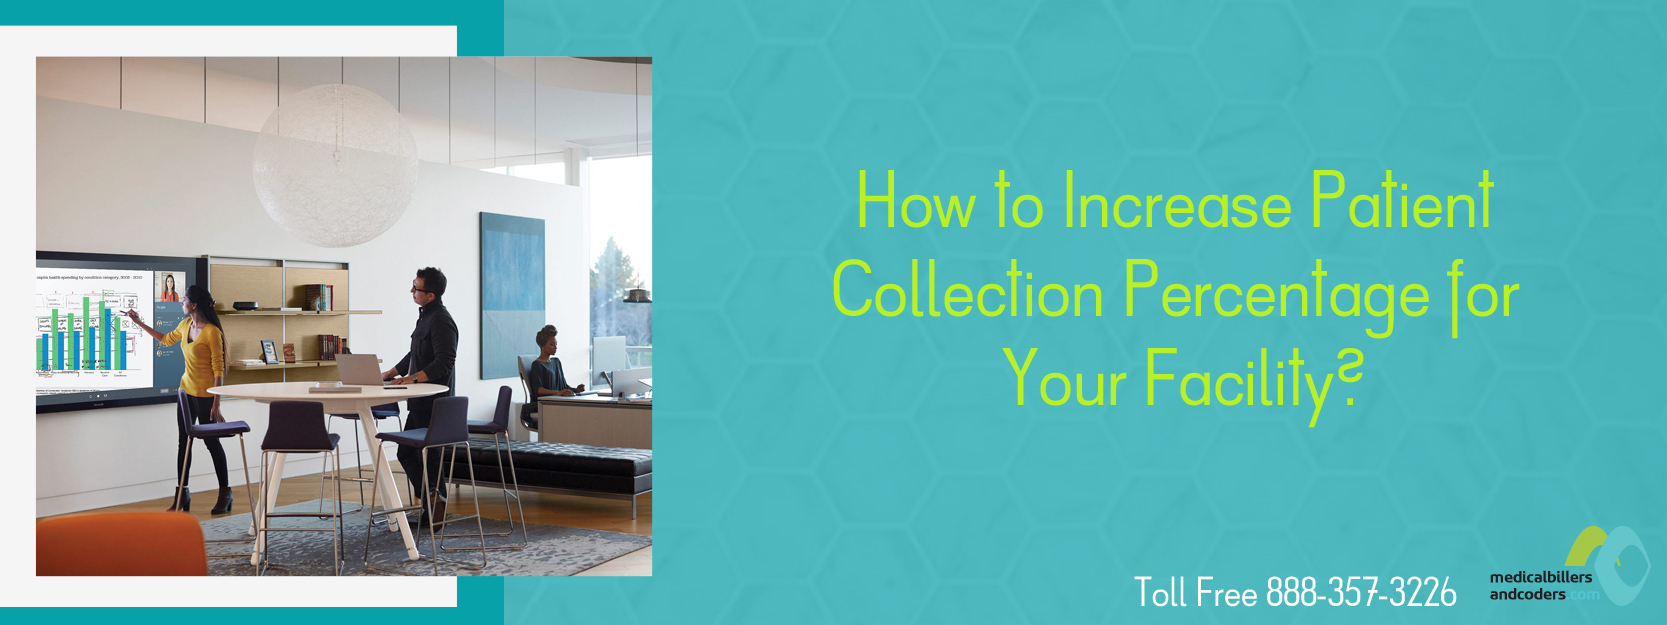 blog-how-to-increase-patient-collection-percentage-for-your-facility